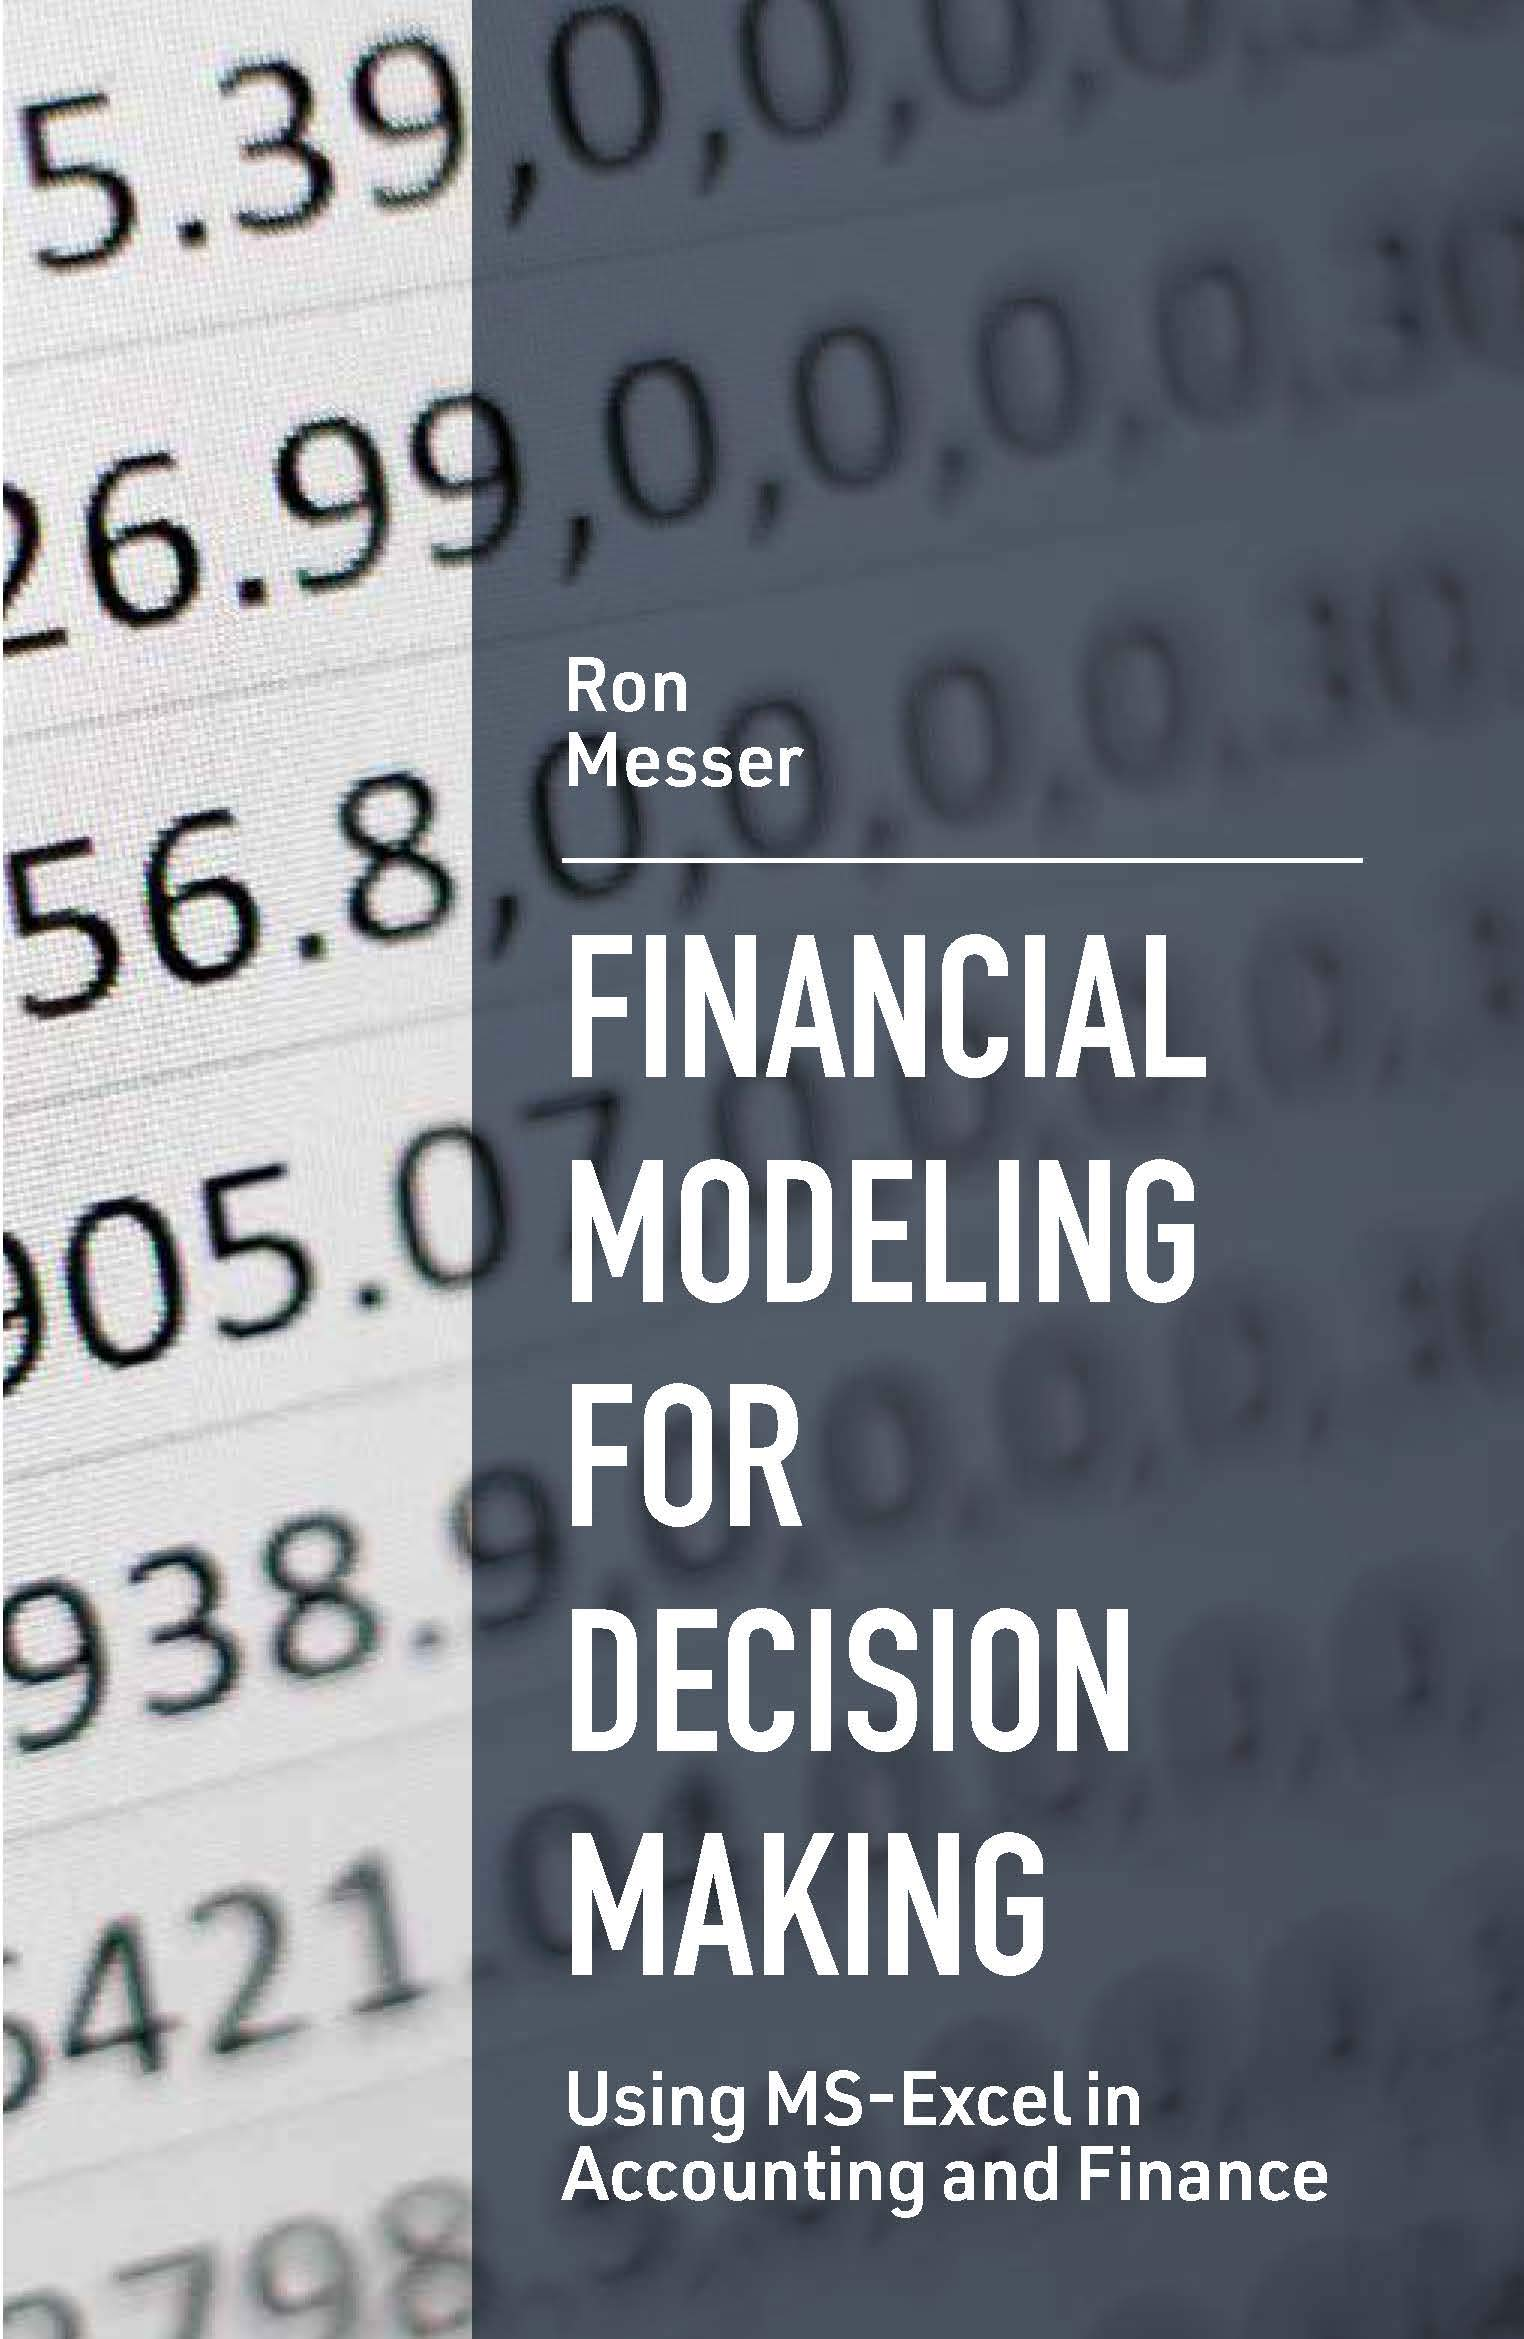 Financial Modeling for Decision Making: Using MS-Excel in Accounting and Finance